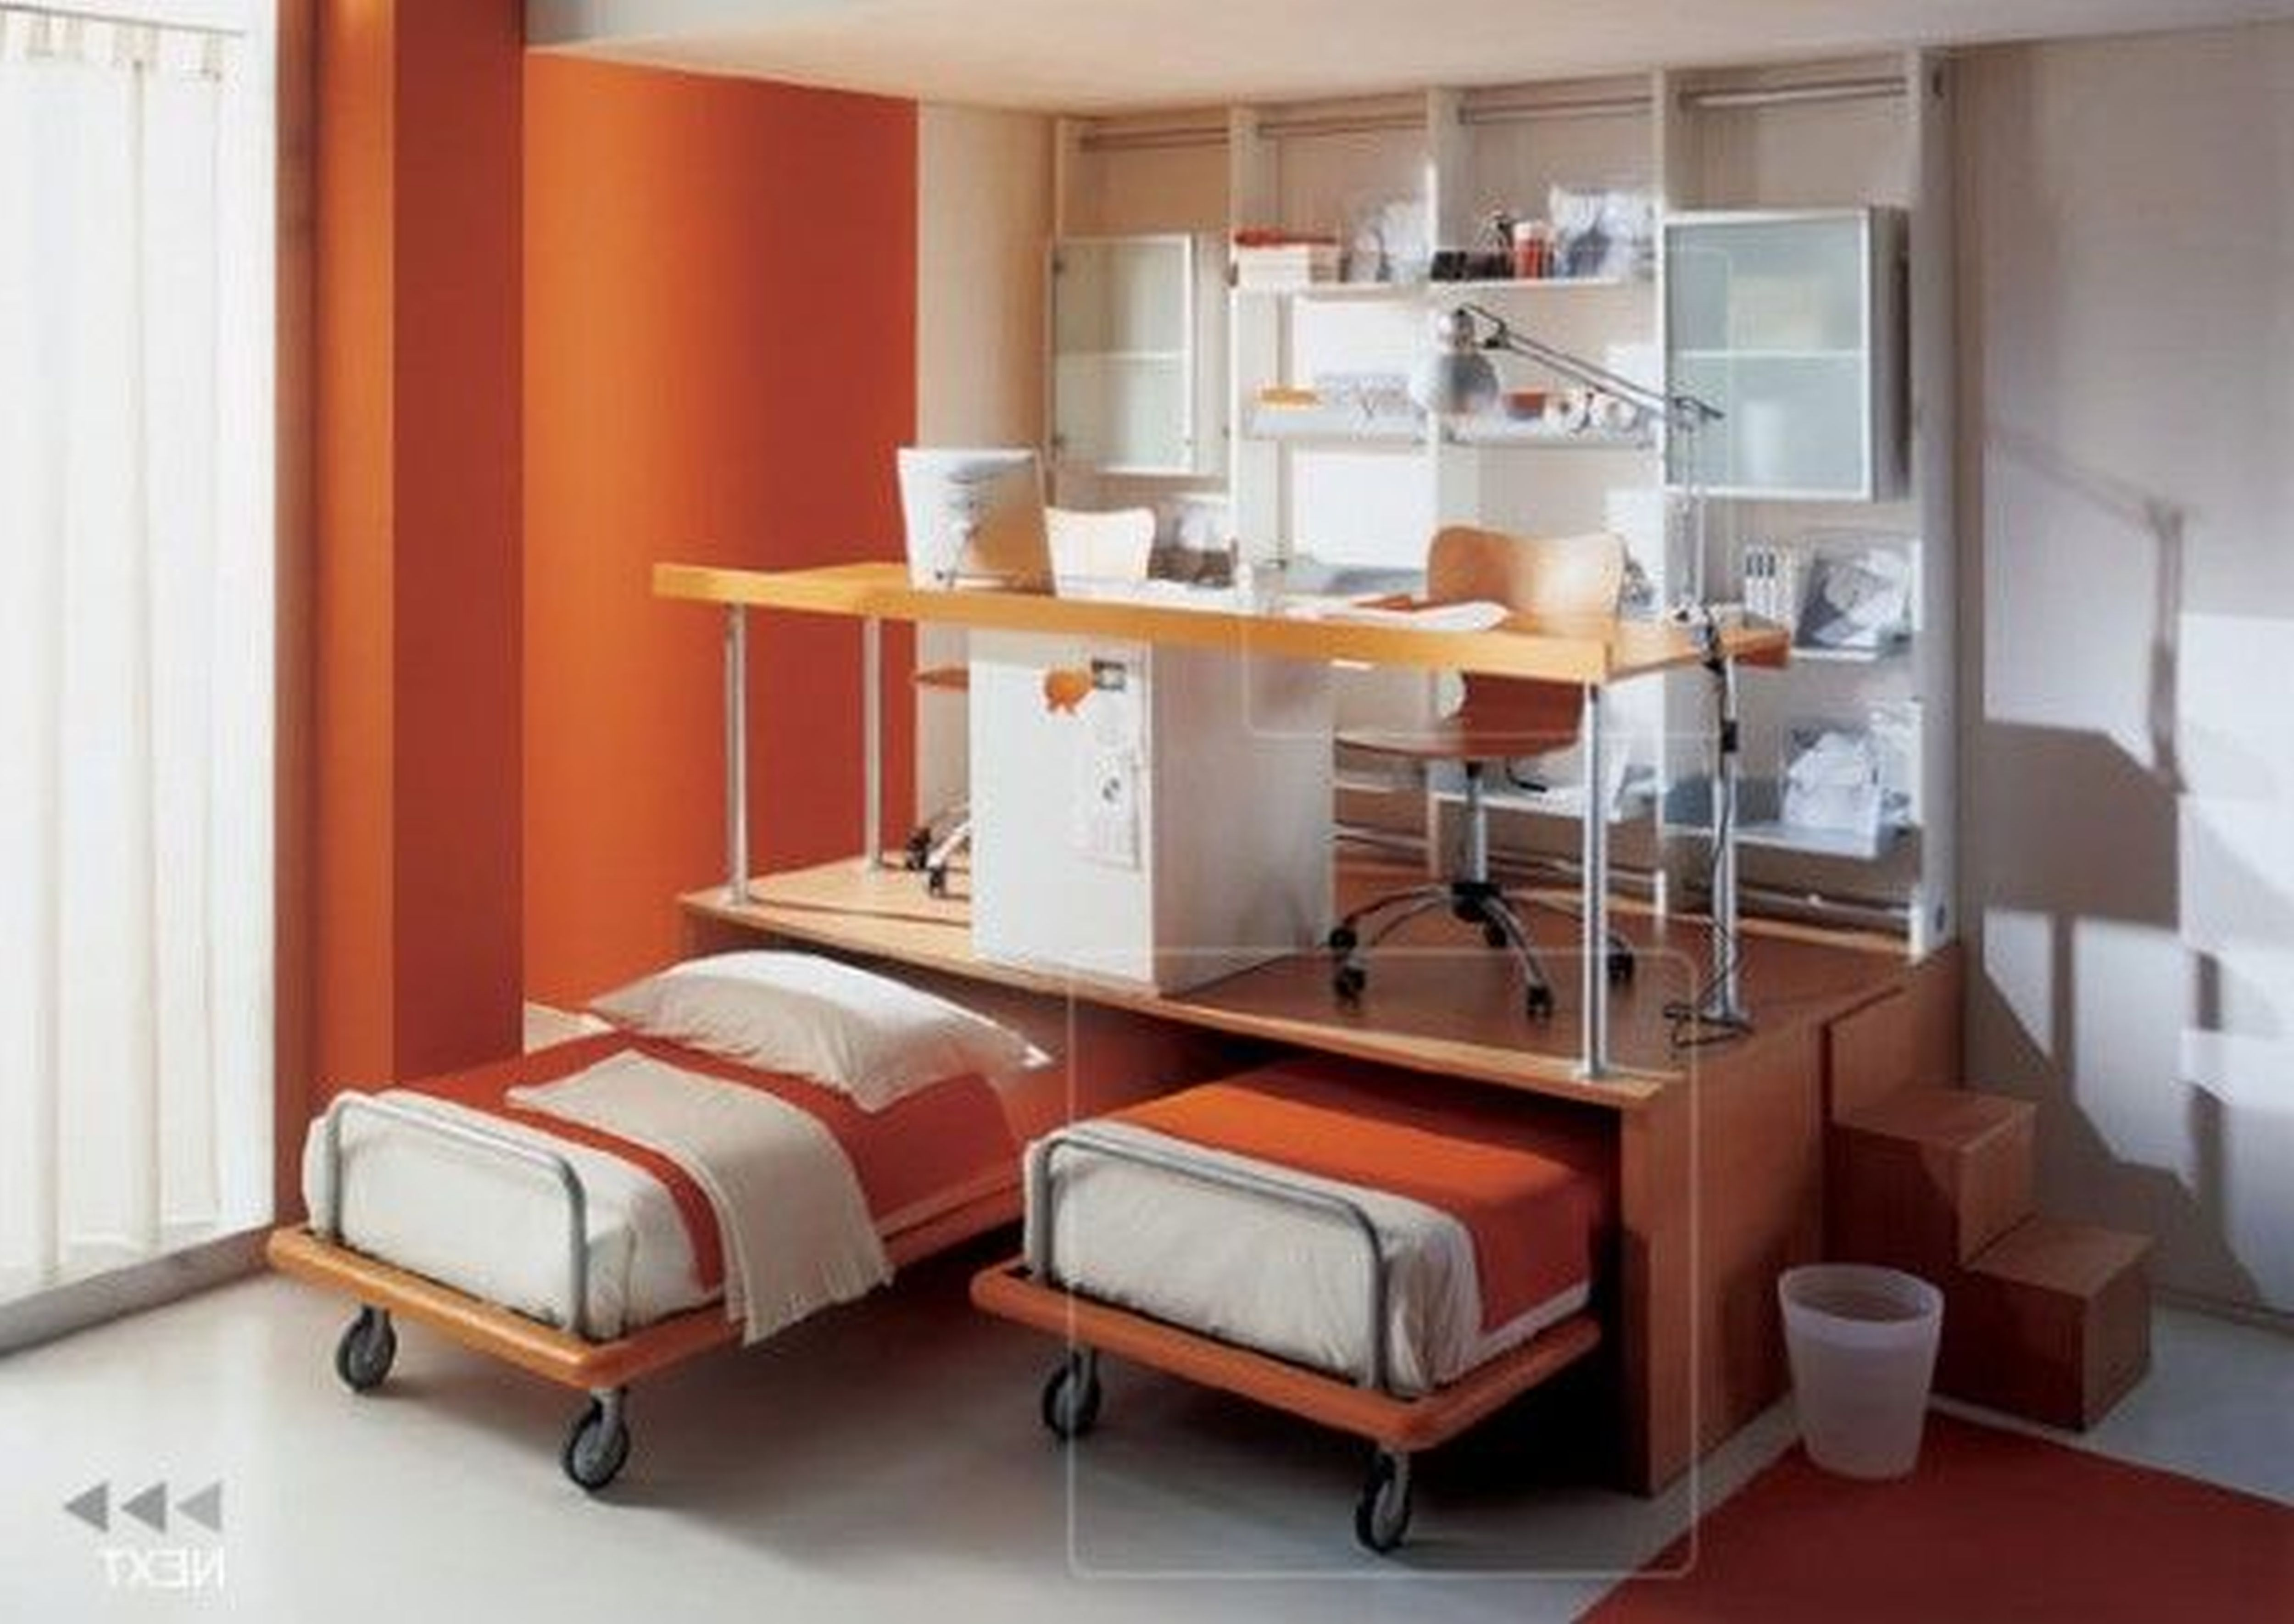 Decorating Ideas Kids Bedroom With Colorful Furniture Ikea Bedroom Design Ideas Modern B Small Bedroom Storage Apartment Decorating For Couples Small Kids Room